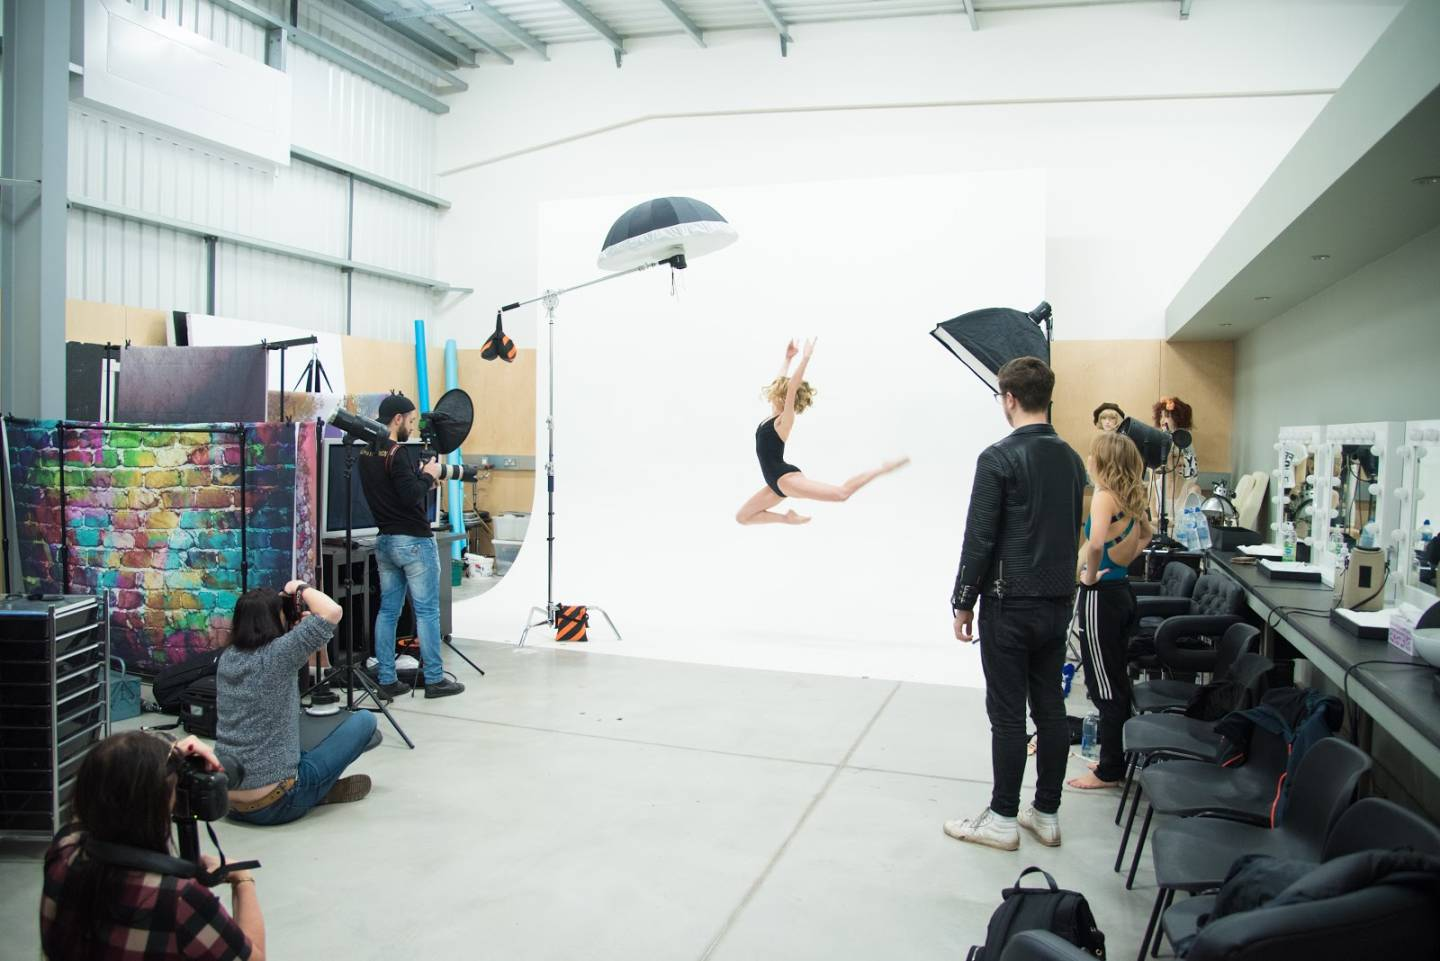 Dance Photography in studio